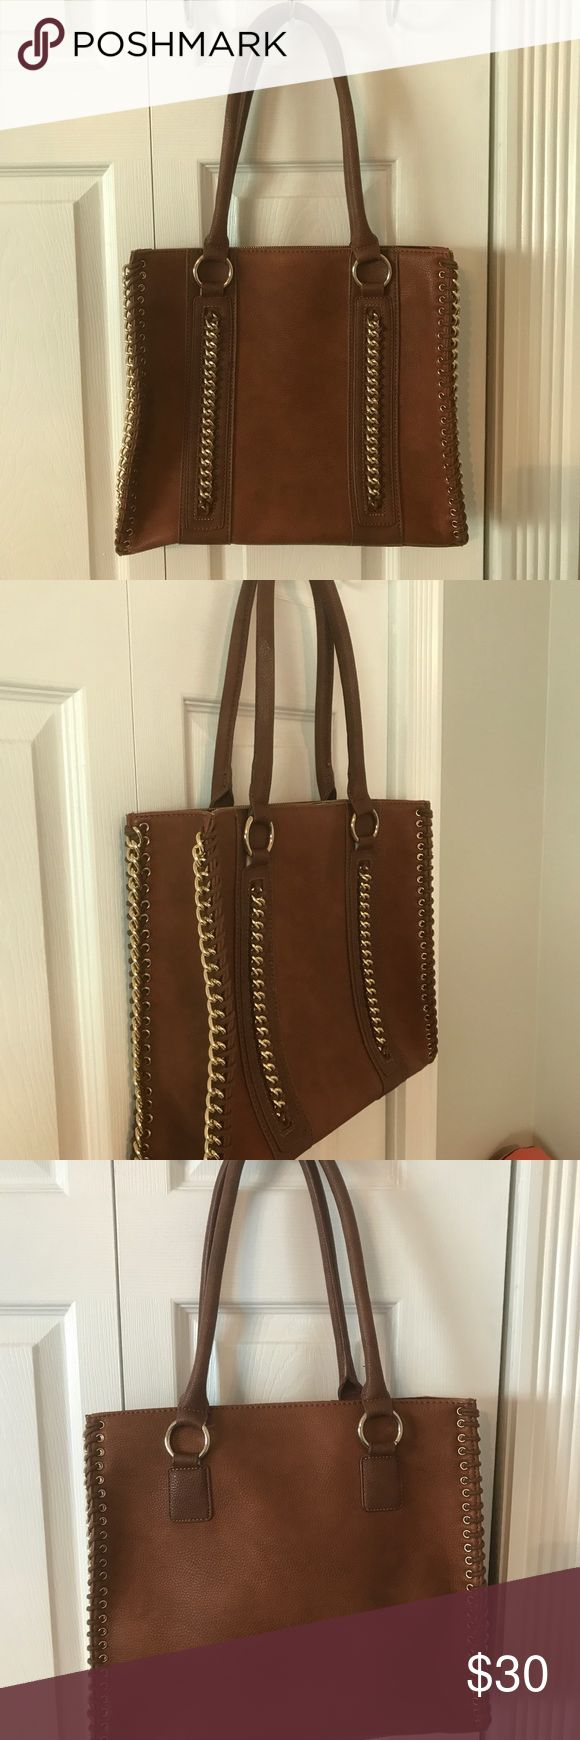 Tan Aldo tote Slightly used tan Aldo tote bag with gold accents. Open interior with ell phone pocket and back zipper pocket. Aldo Bags Totes